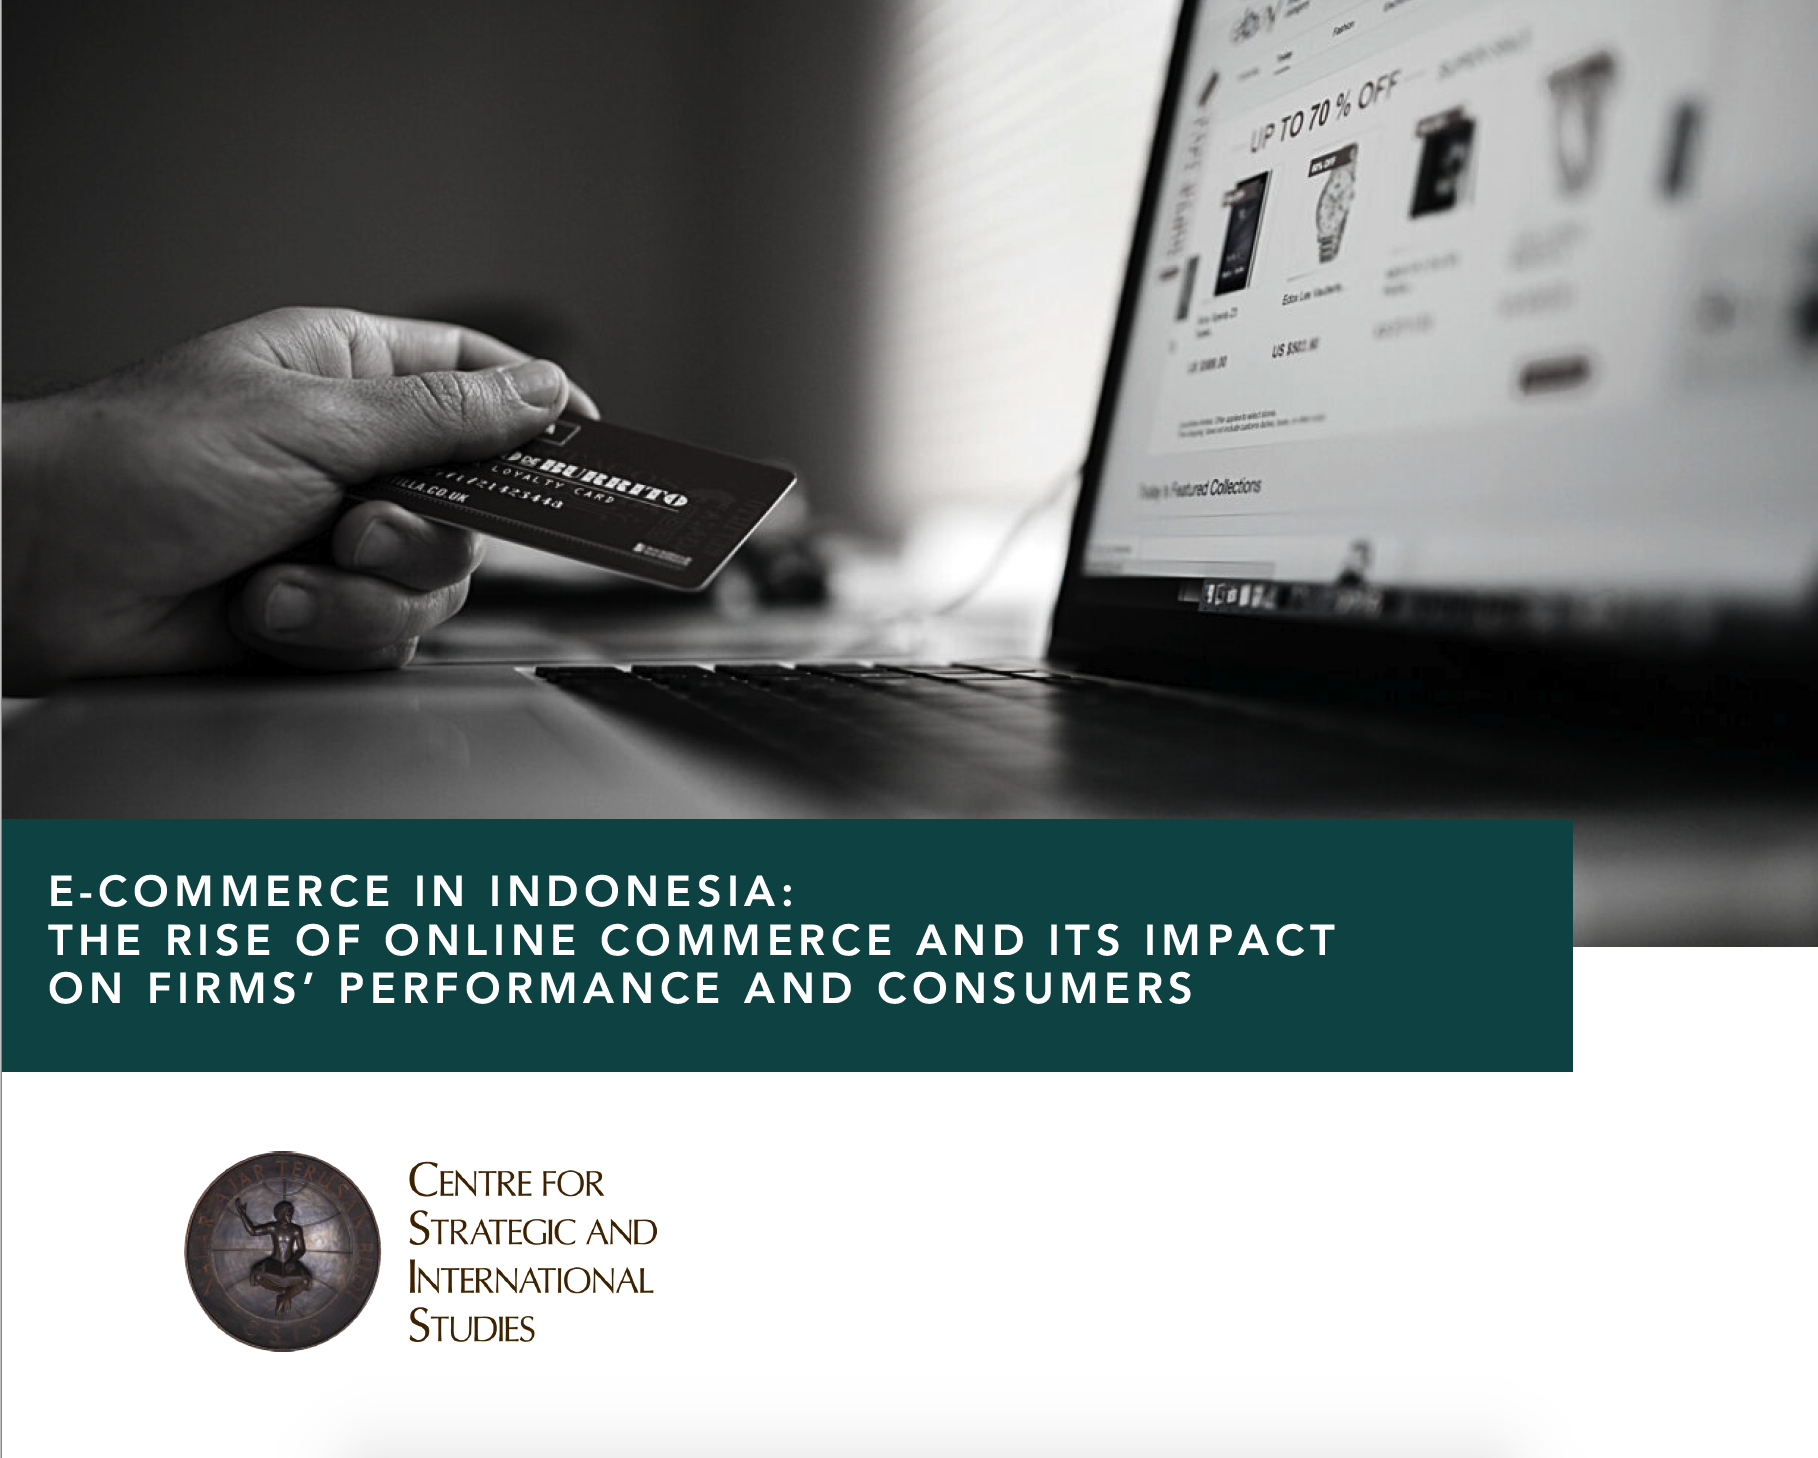 E-commerce in Indonesia: The Rise of Online Commerce and its Impact on Firms' Performance and Consumers